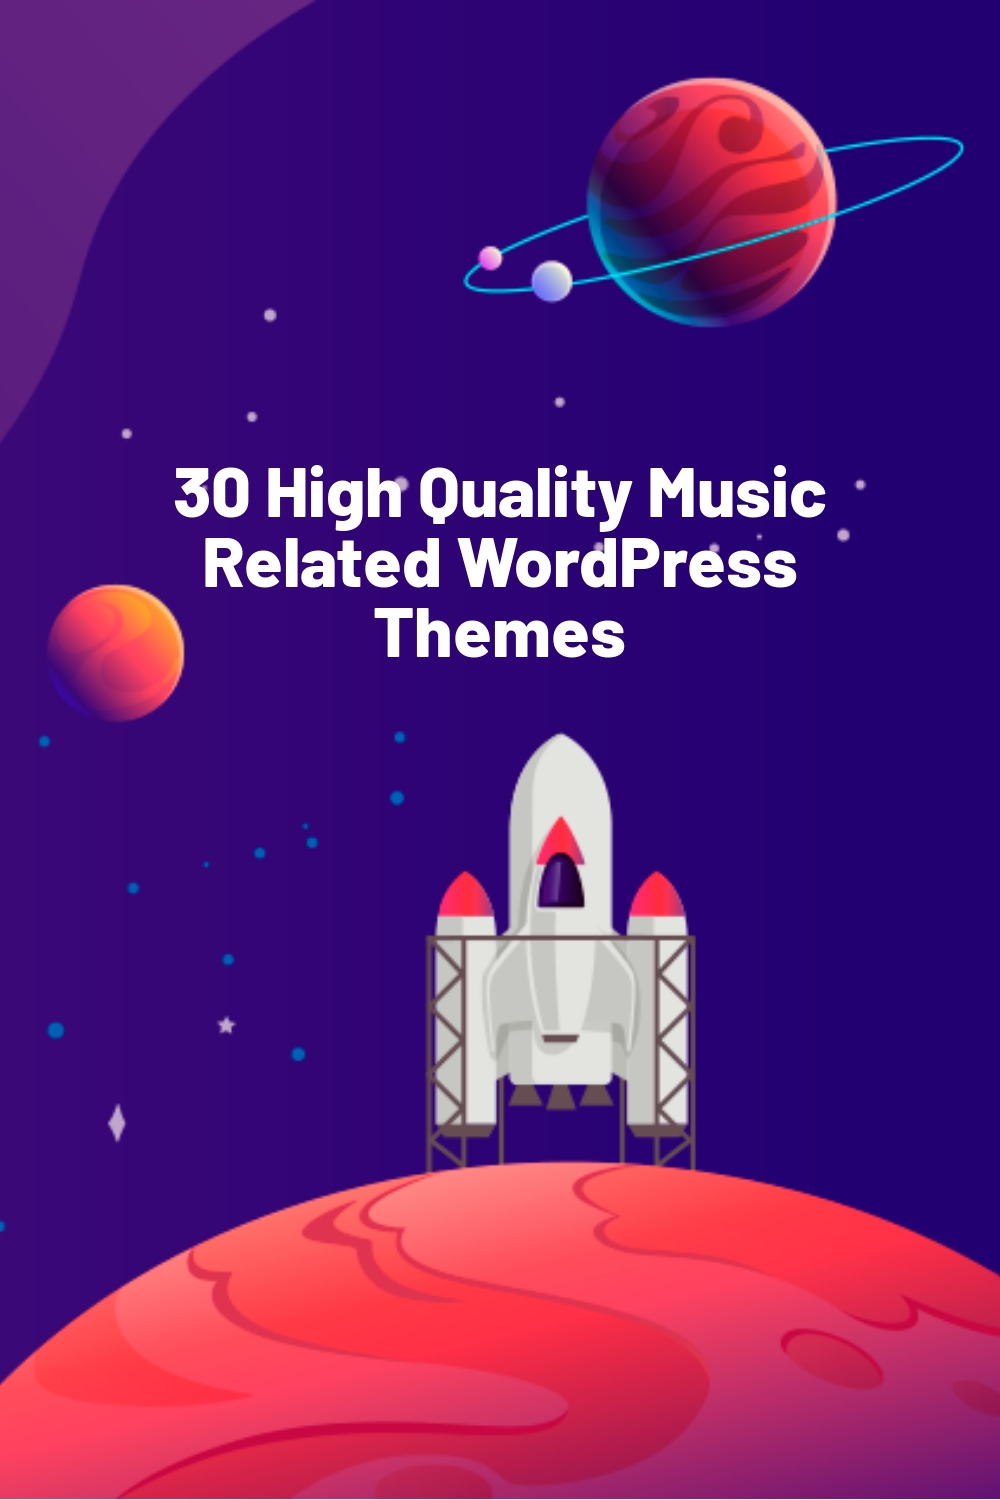 30 High Quality Music Related WordPress Themes